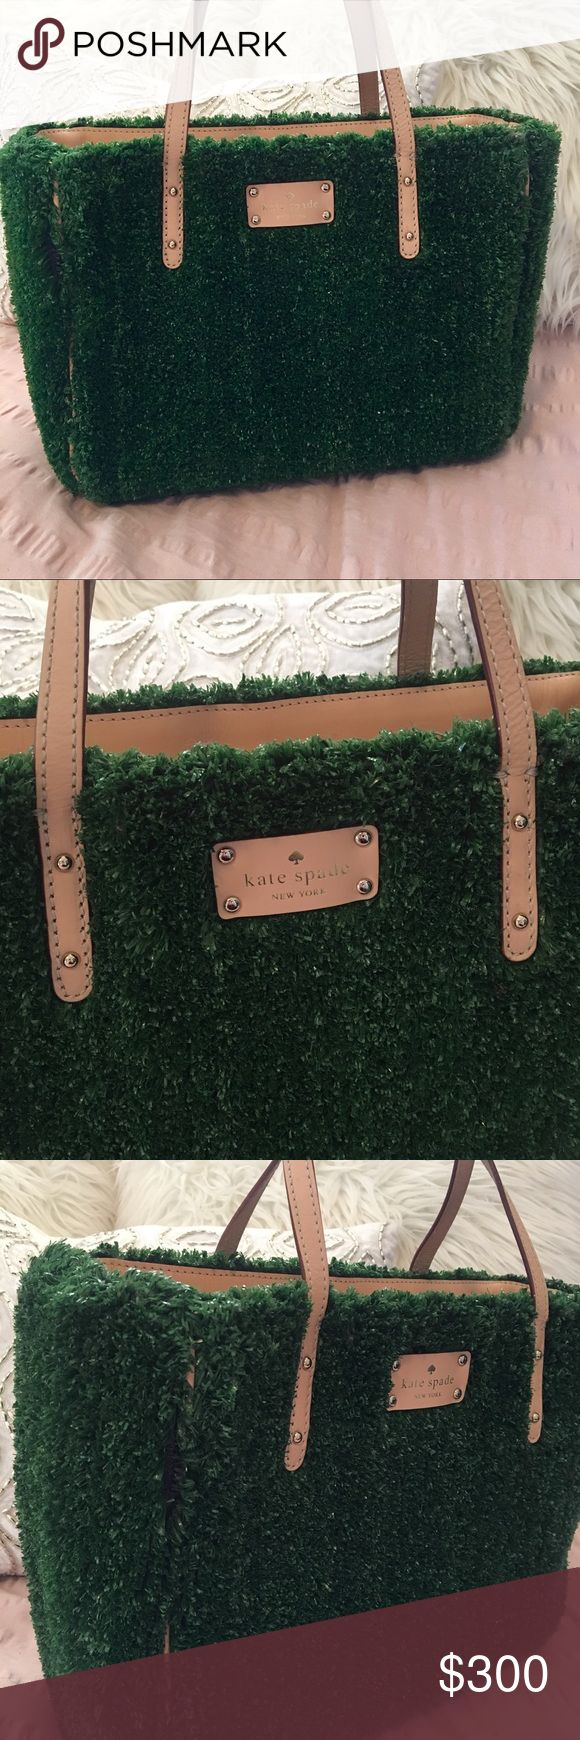 "RARE Kate Spade ""Hold Court Quinn"" AstroTurf Purse This rare, authentic Kate Spade ""Hold Court Quinn"" purse is in amazing, like-new condition. It has a few light markings on the interior but only noticeable upon close inspection. It's a faux grass texture with smooth leather trine. It has 14-Karat light gold plated hardware. It's perfect for football season, tennis season, spring, summer, you name it! Make a statement with this unique handbag! kate spade Bags"